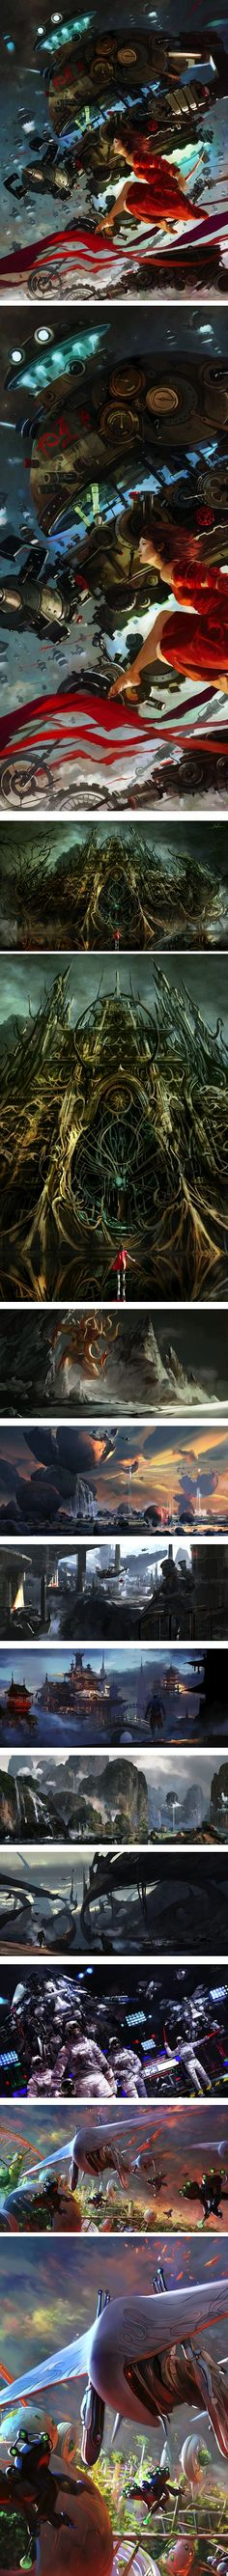 Yap Kun Rong, concept art and illustration